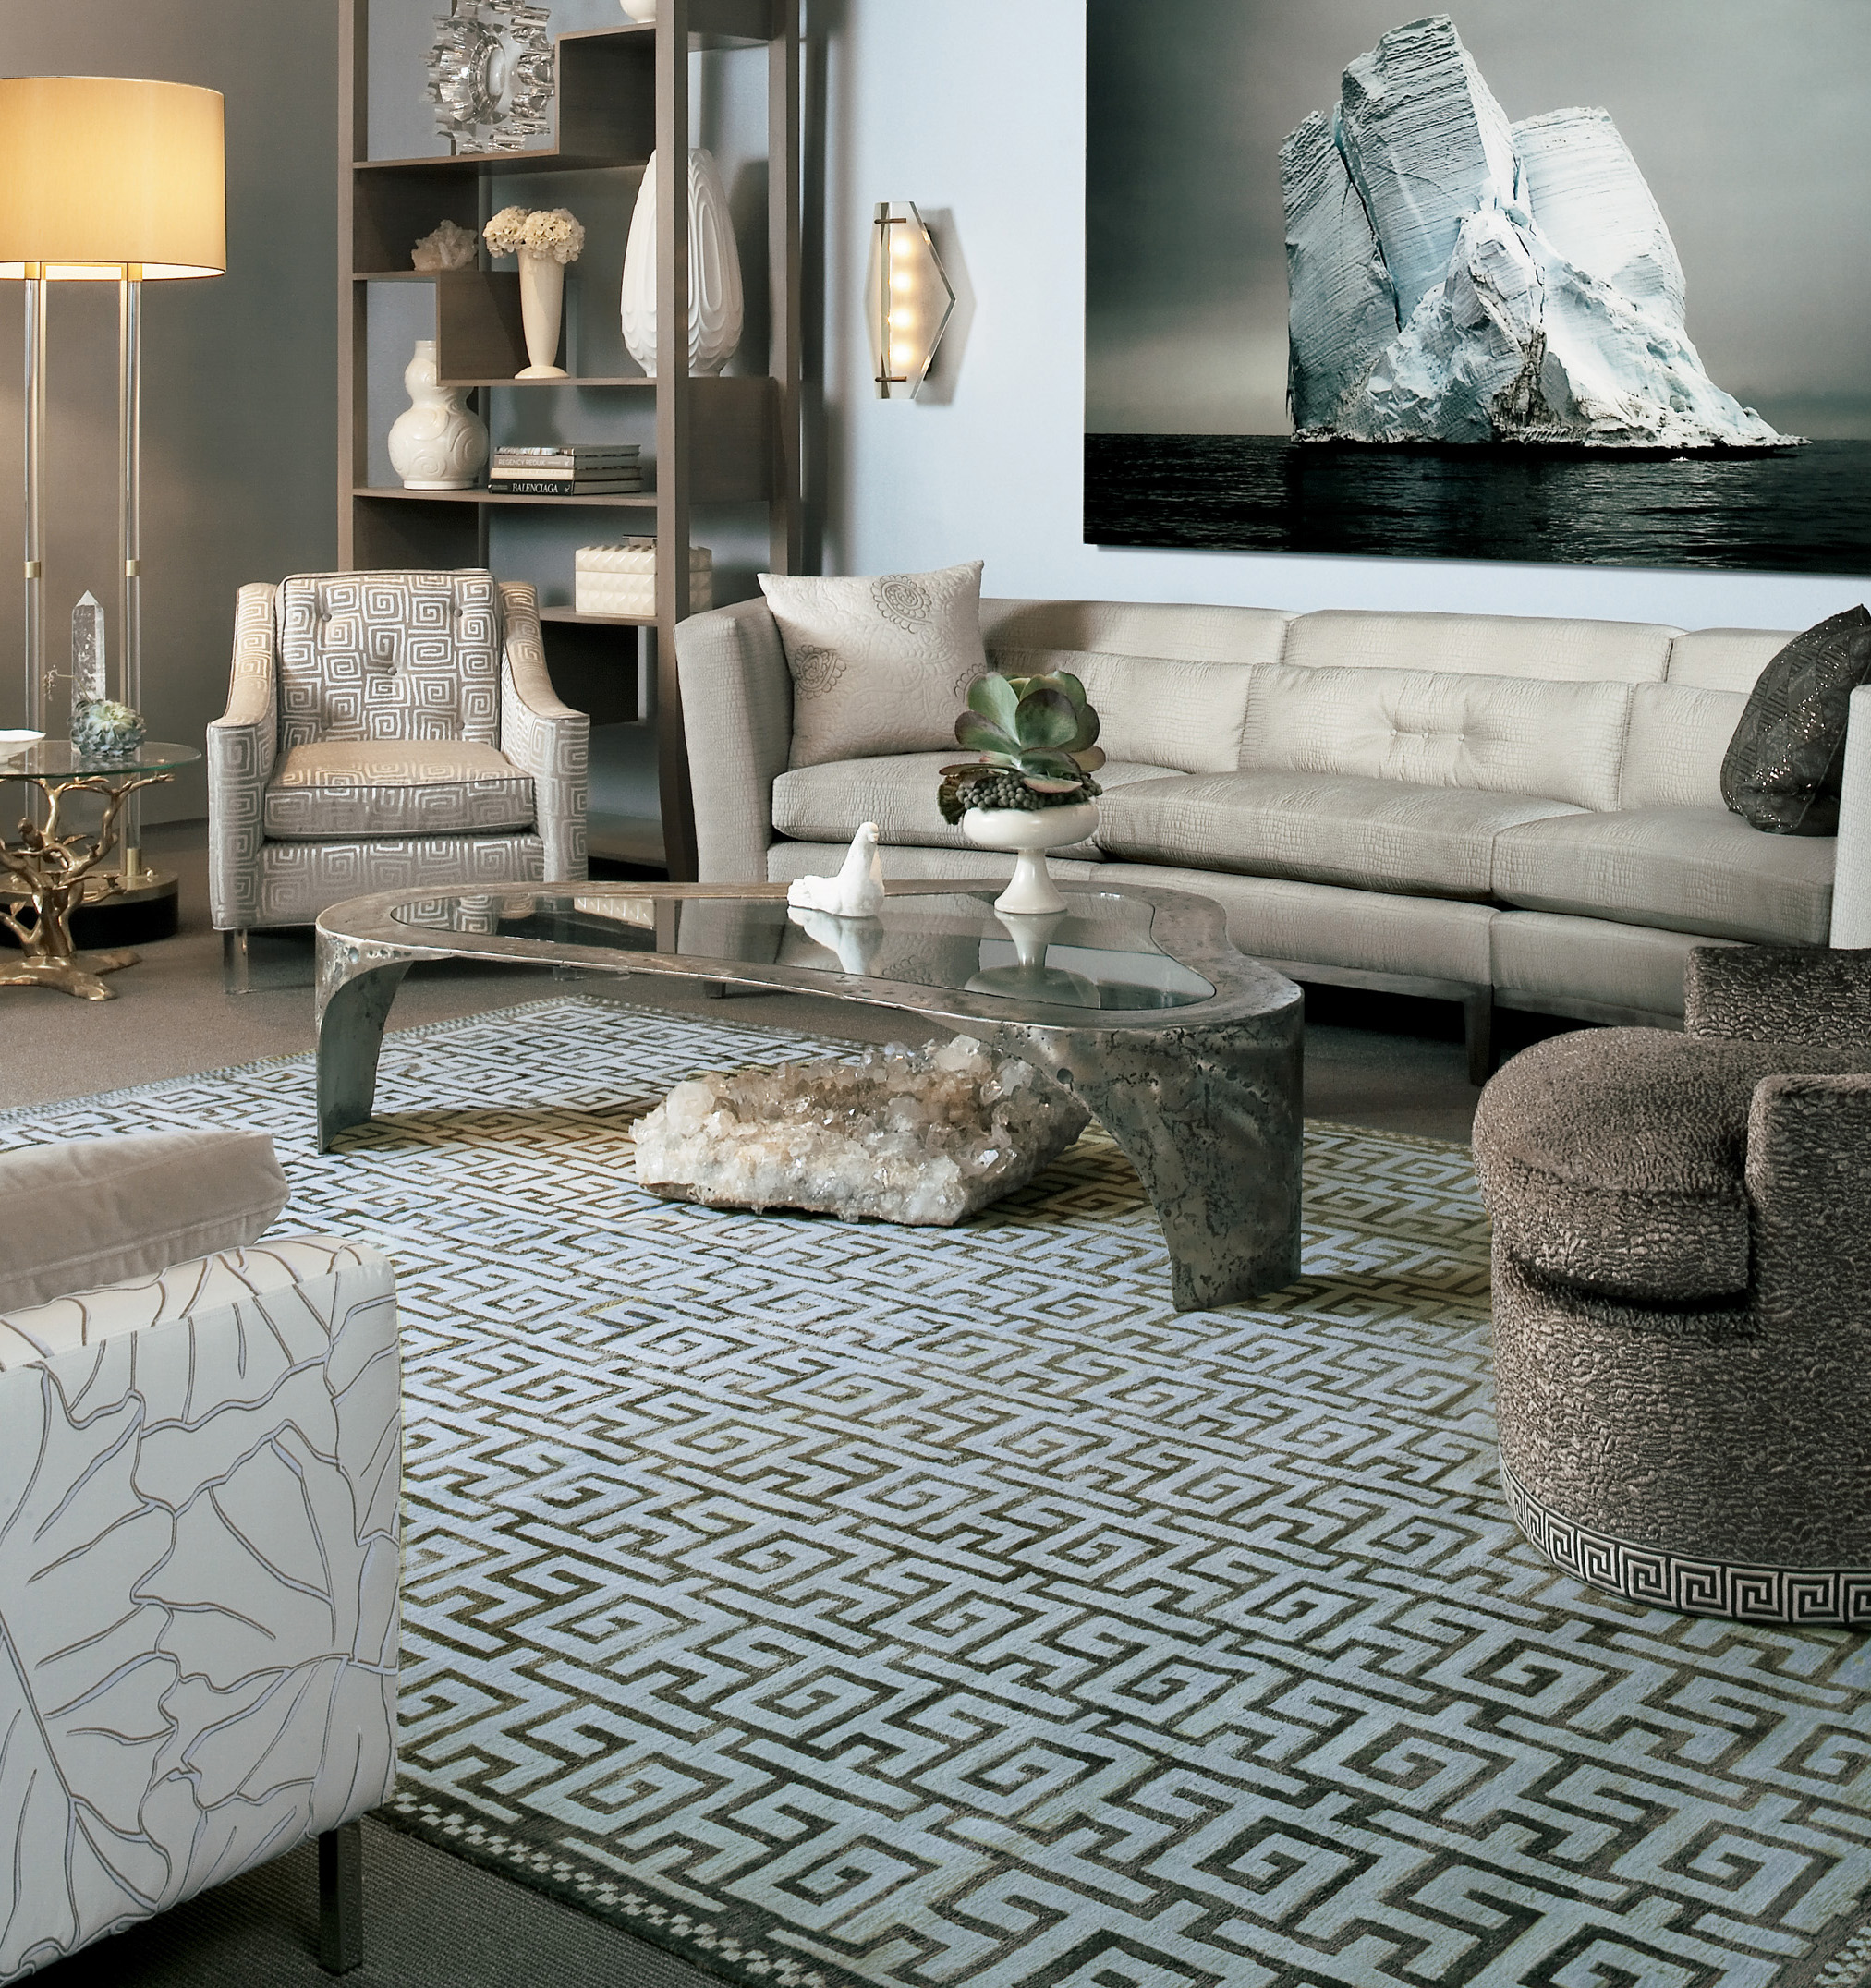 generation rugs from course lifestyles a advice of carpet tribune new rug chicago sc crash expert home stark story makers